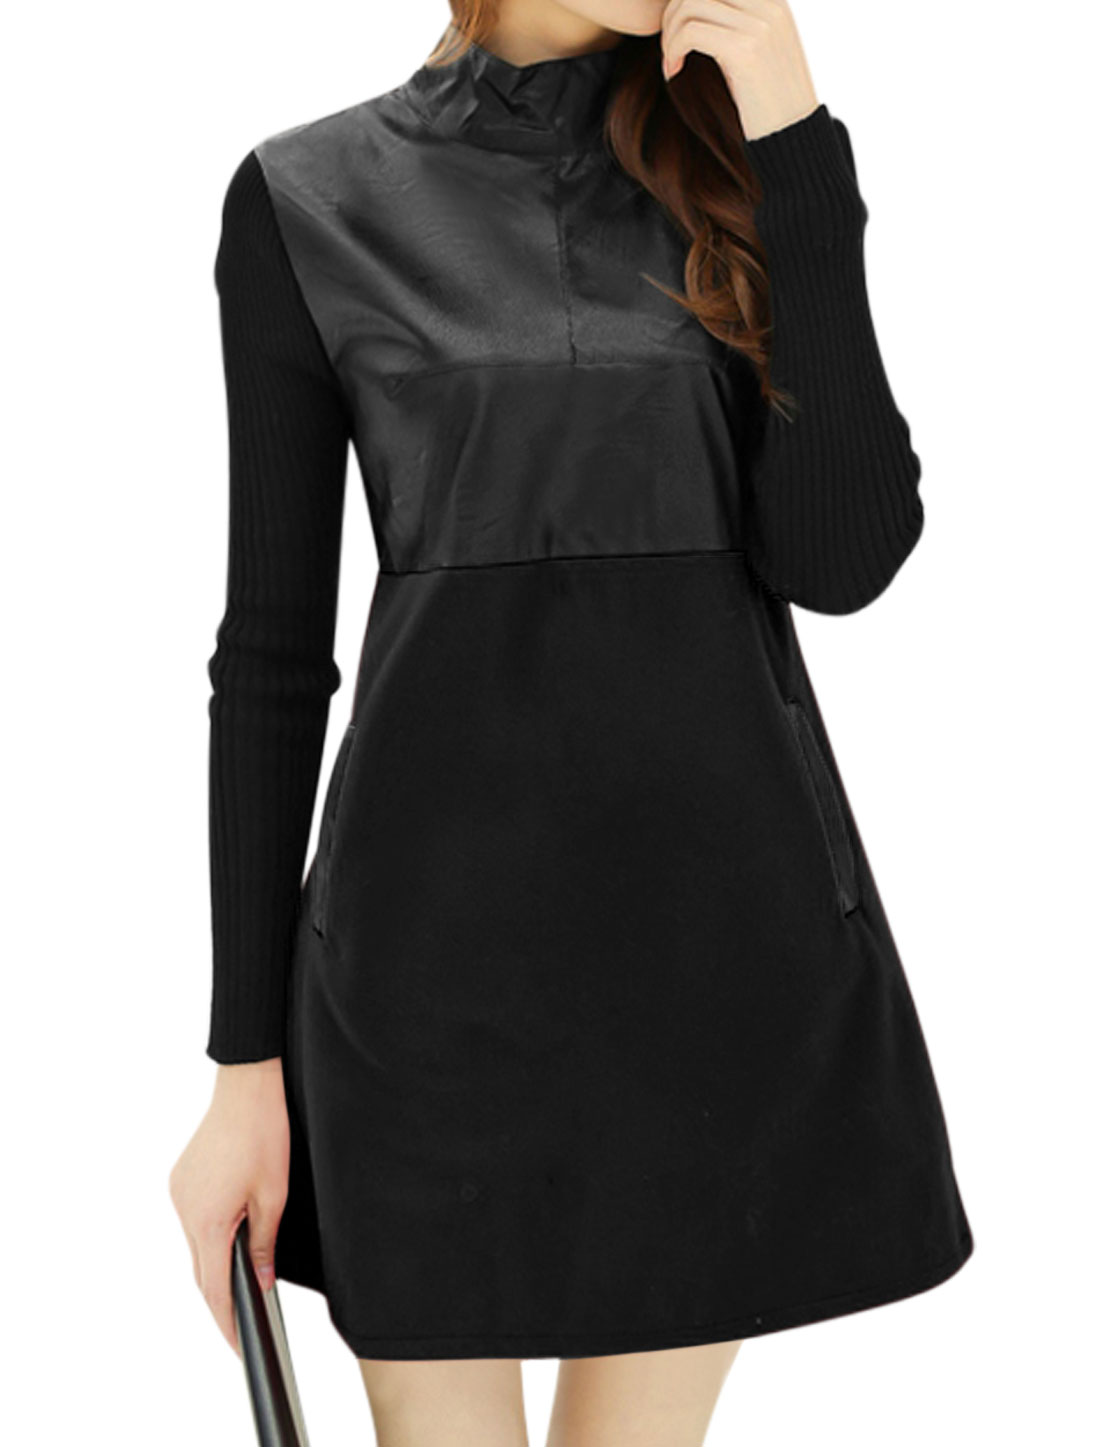 Women Knitting Long Sleeves PU Panel A Line Tunic Worsted Dress Black M